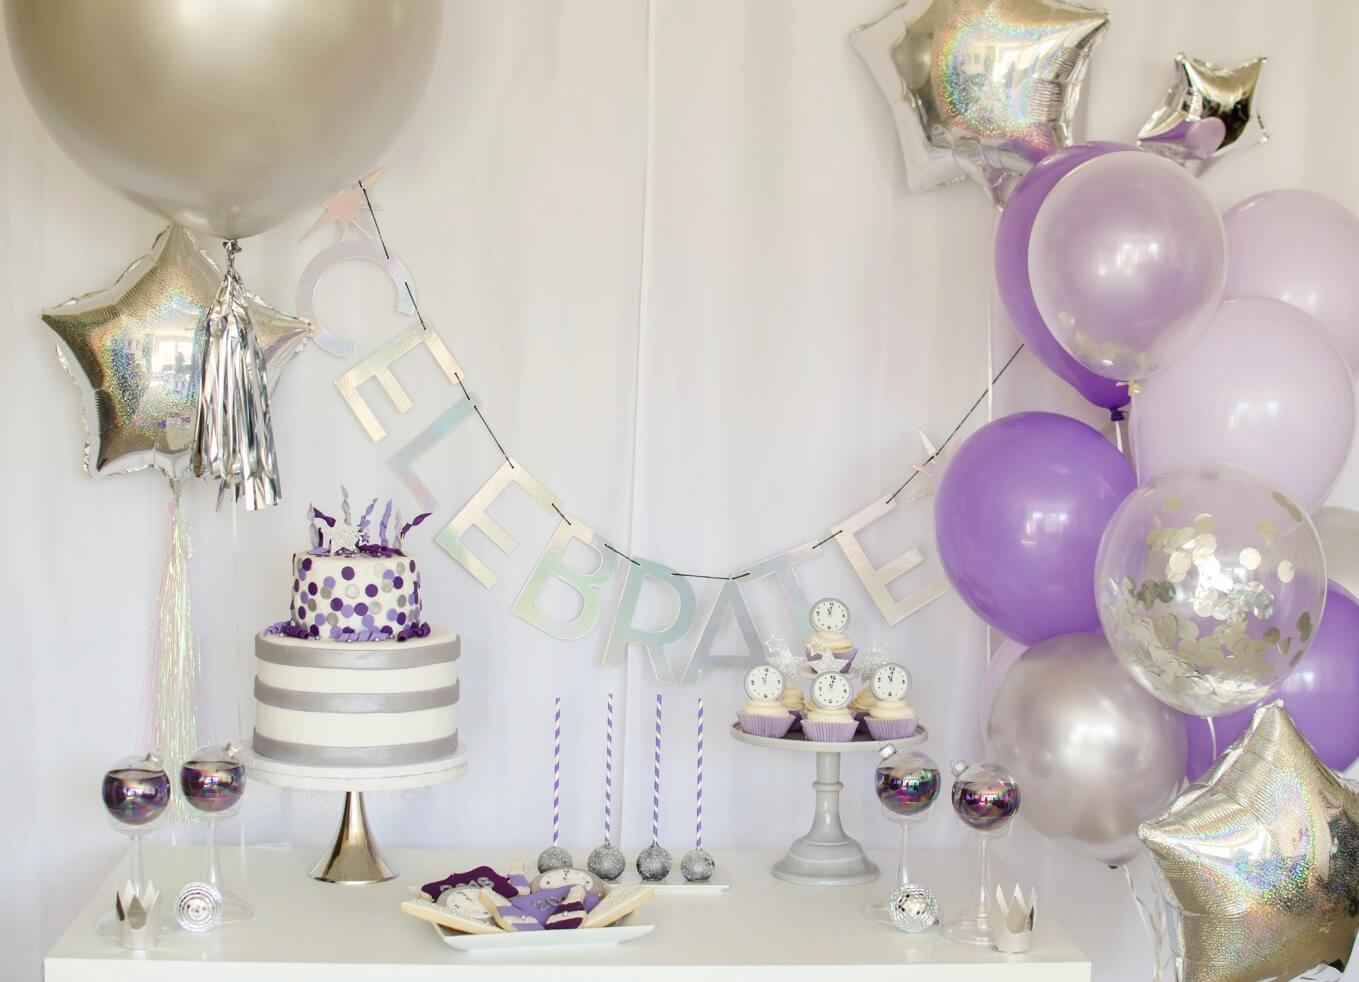 Ultra Violet New Years party idea, desserts and decor inspiration / New Years Eve Party Dessert Tablescape / Created by Carolina from Mint Event Design www.minteventdesign.com